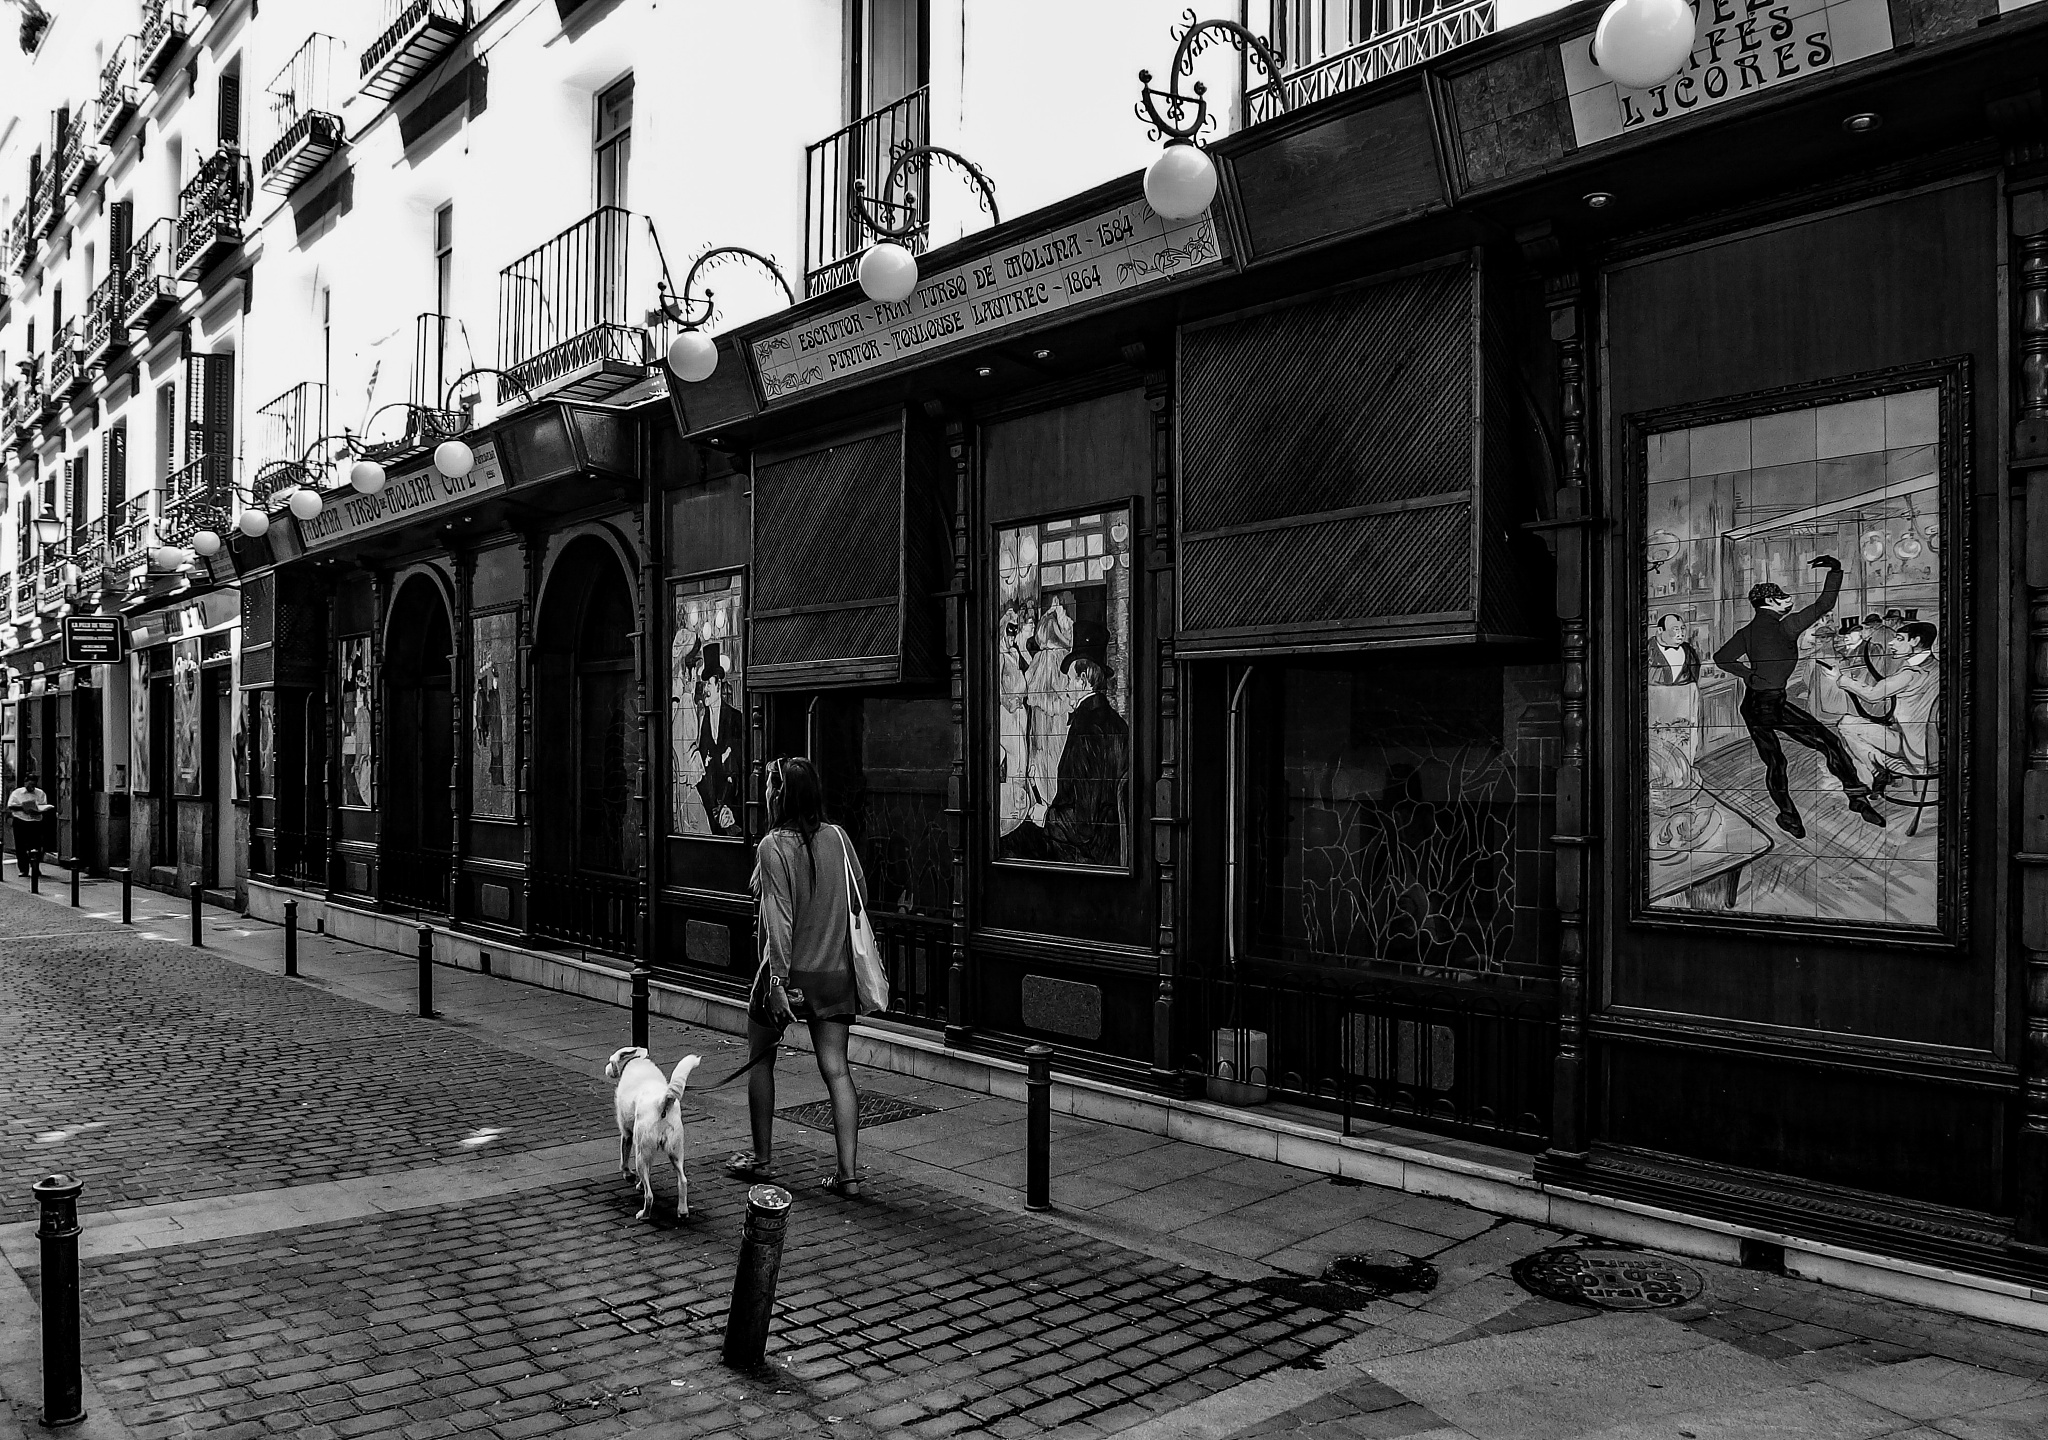 Street at Madrid by Miguel Ballabriga